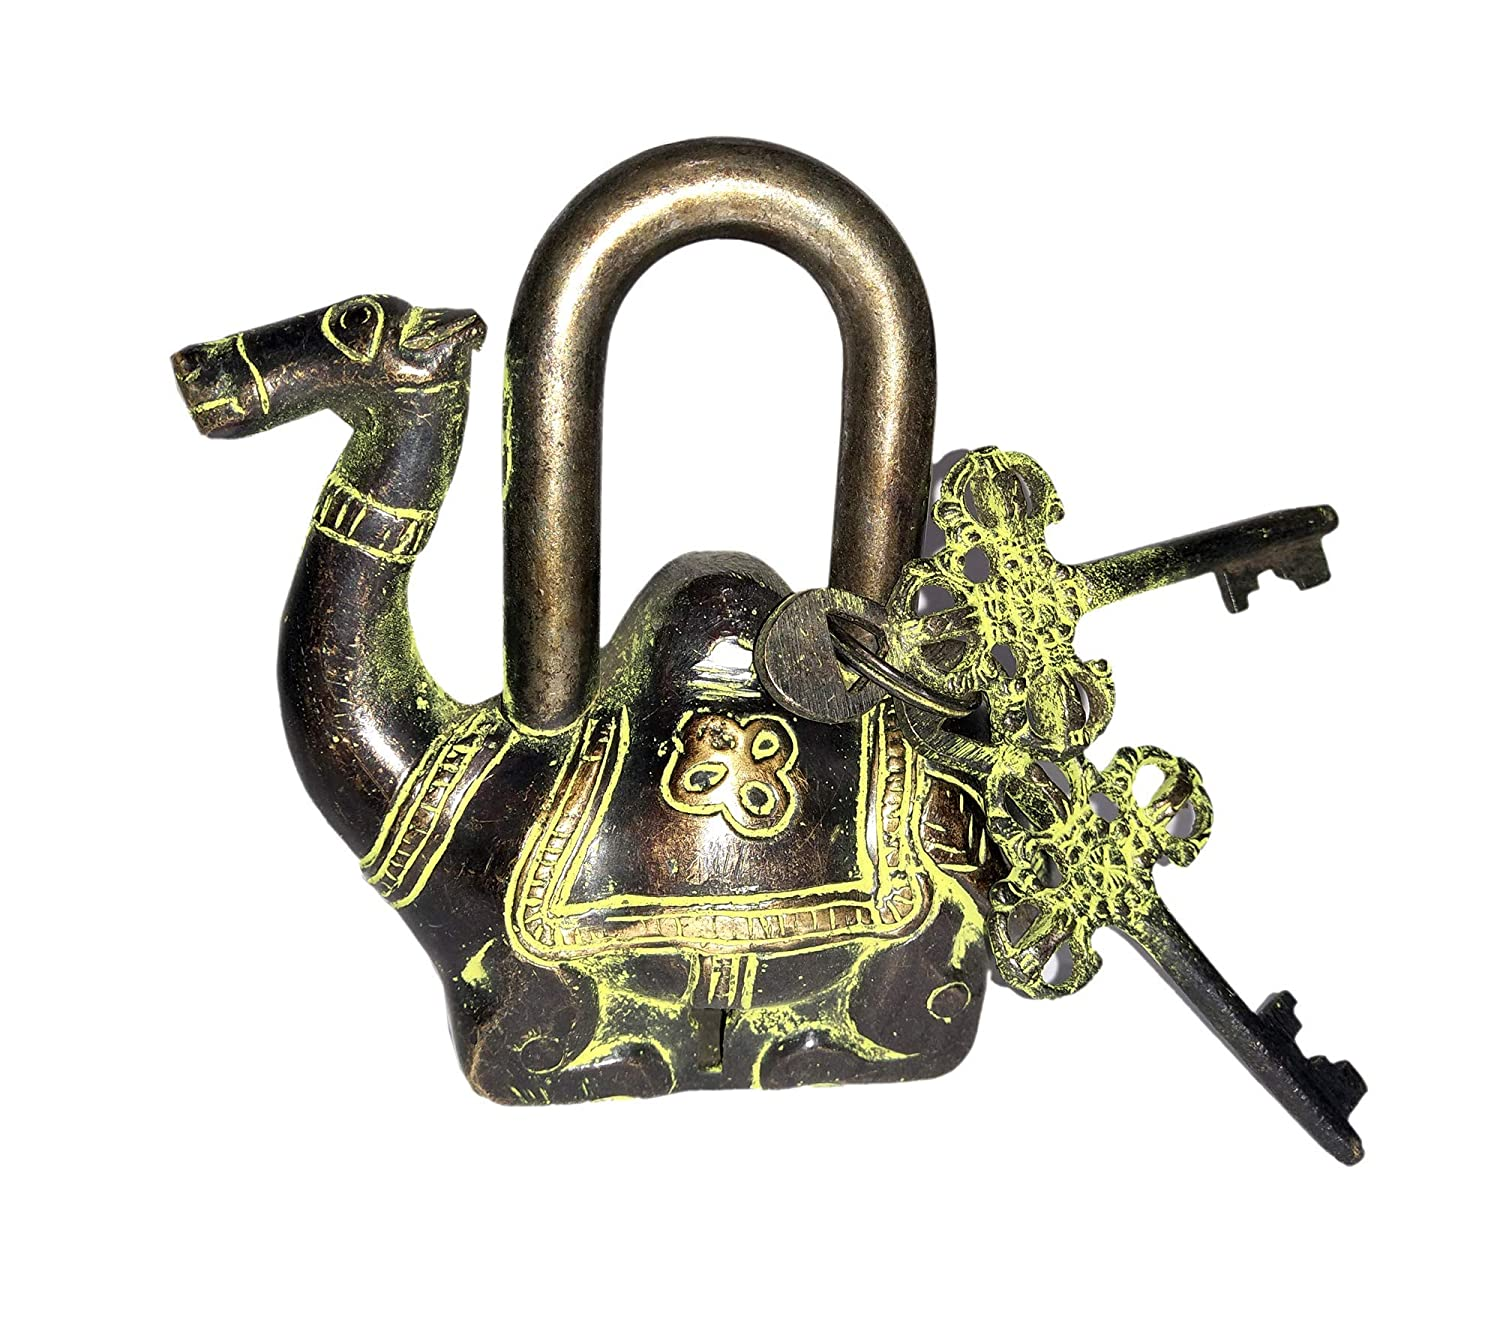 Handmade Antique Design Laxman Art Fish Shaped Brass Lock Padlock Unique Collectible Combination of Style /& Security with 2 Keys